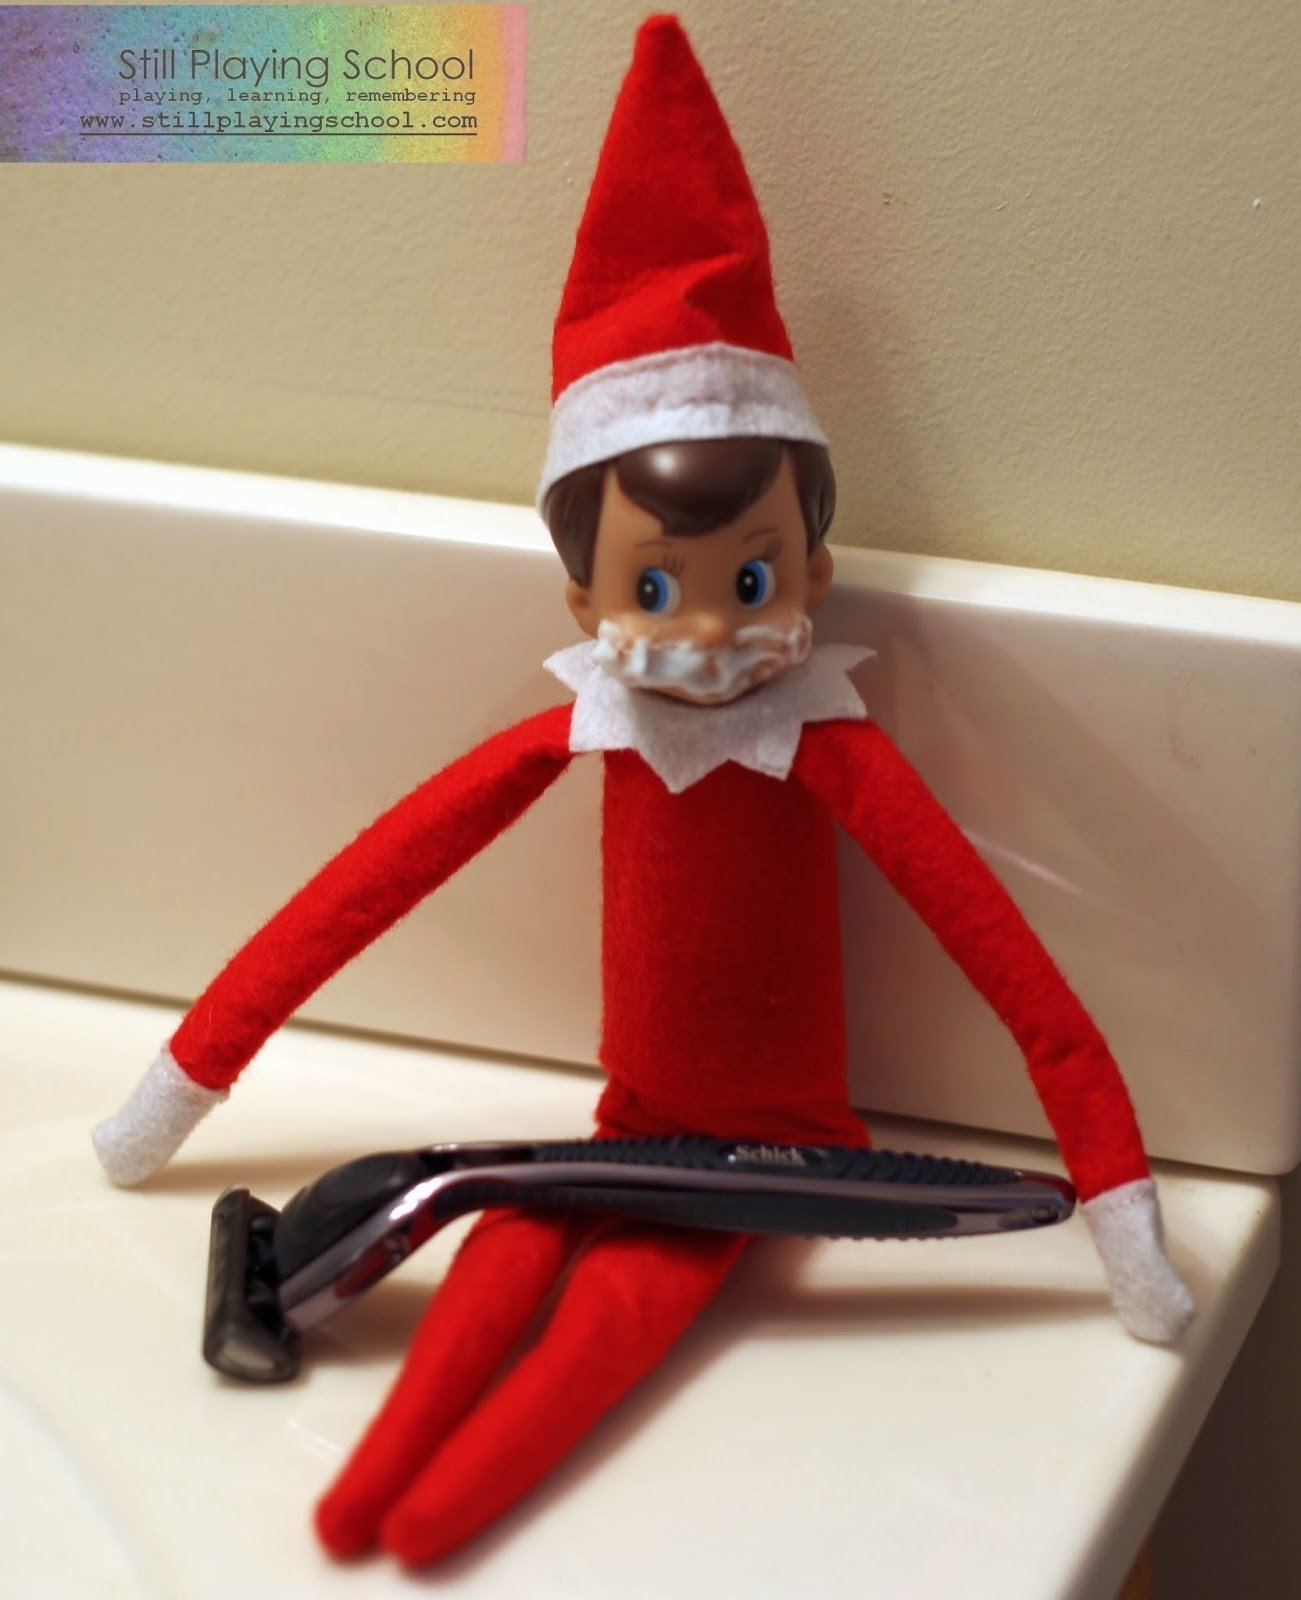 10 Pretty Ideas For Elf On A Shelf a month of elf on the shelf ideas still playing school 6 2021